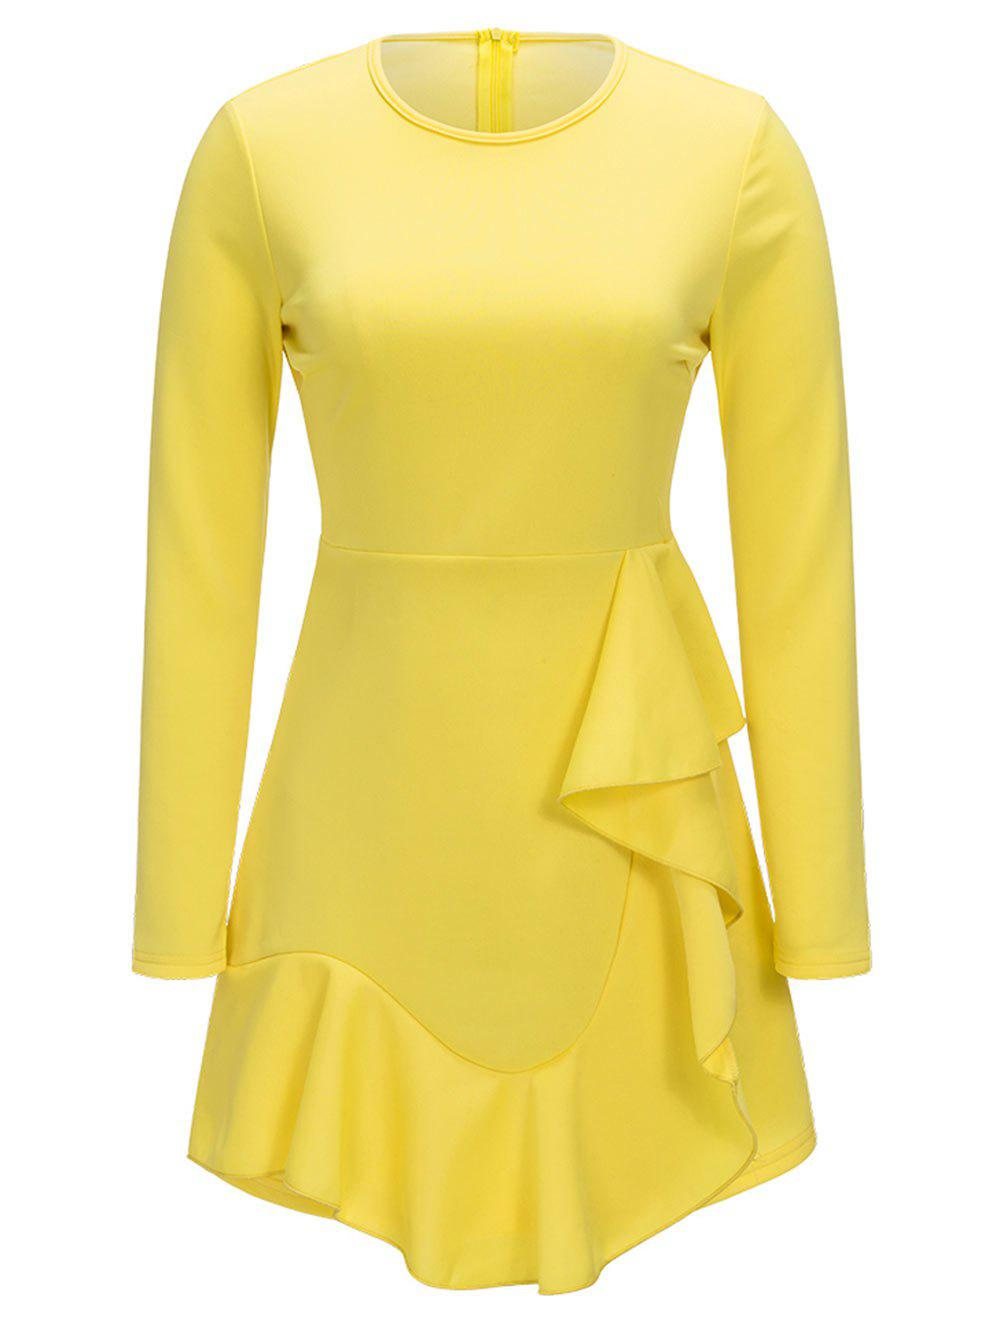 Ruffle Long Sleeve A-line Dress - YELLOW L